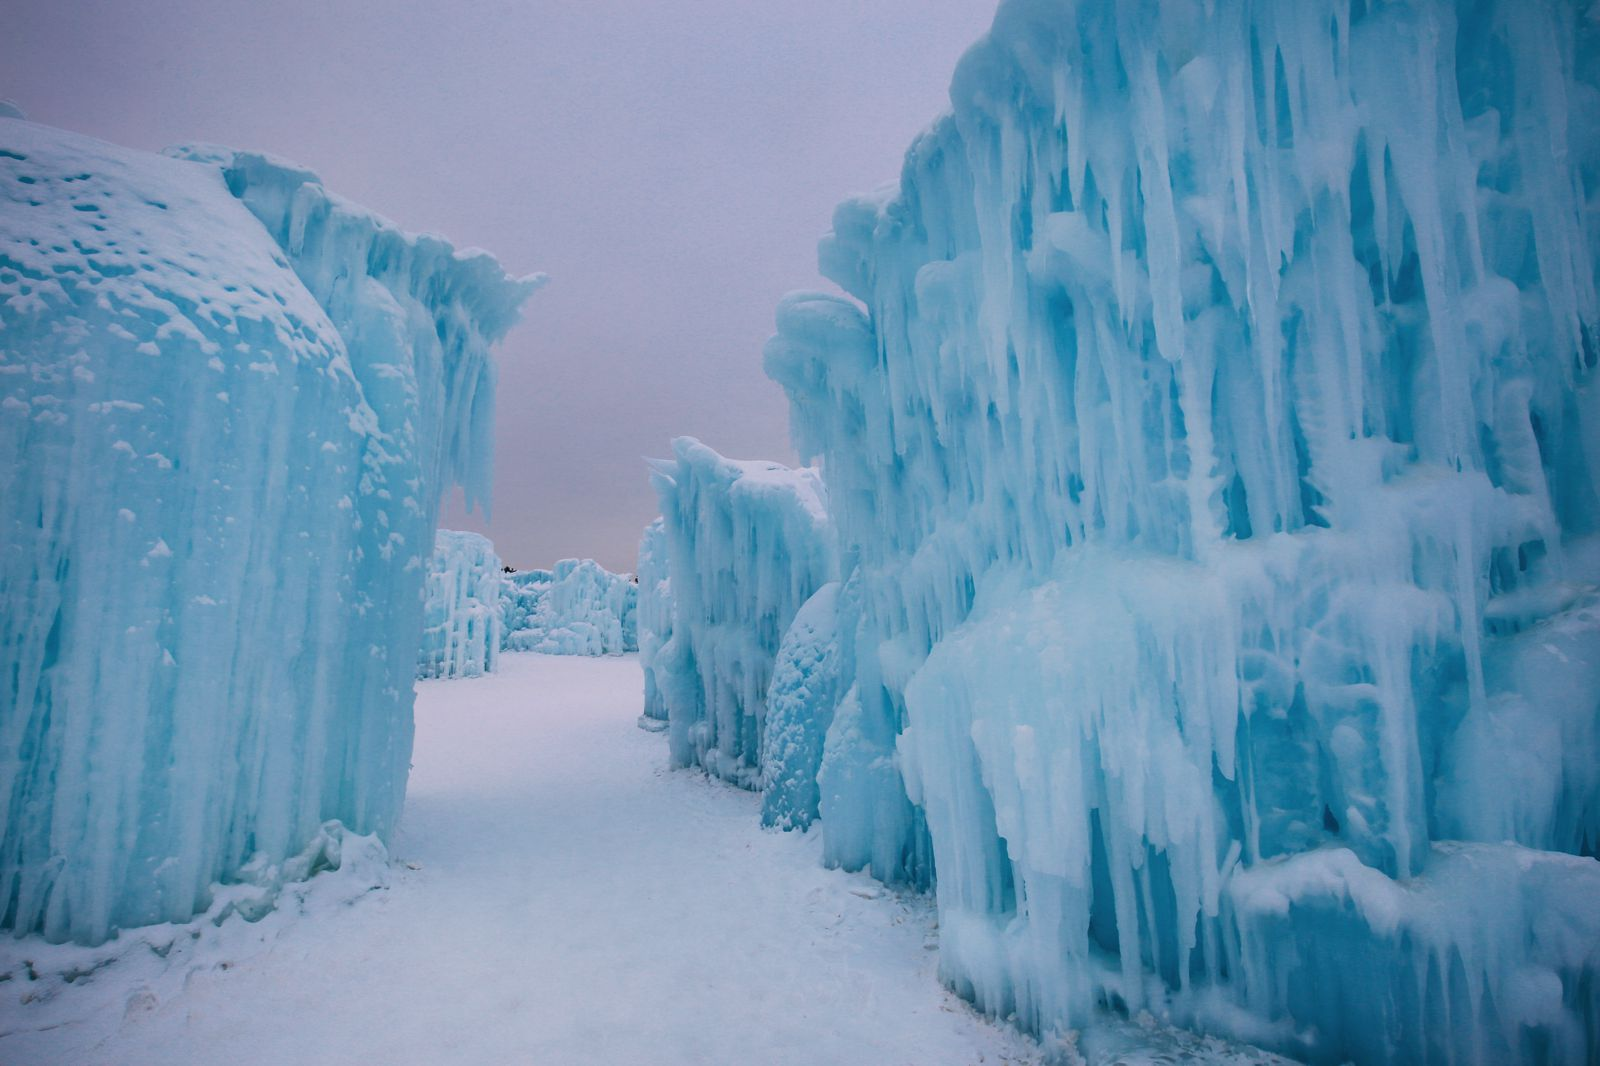 Edmonton City In Alberta Canada - Ice Castles And Travel Photos (6)